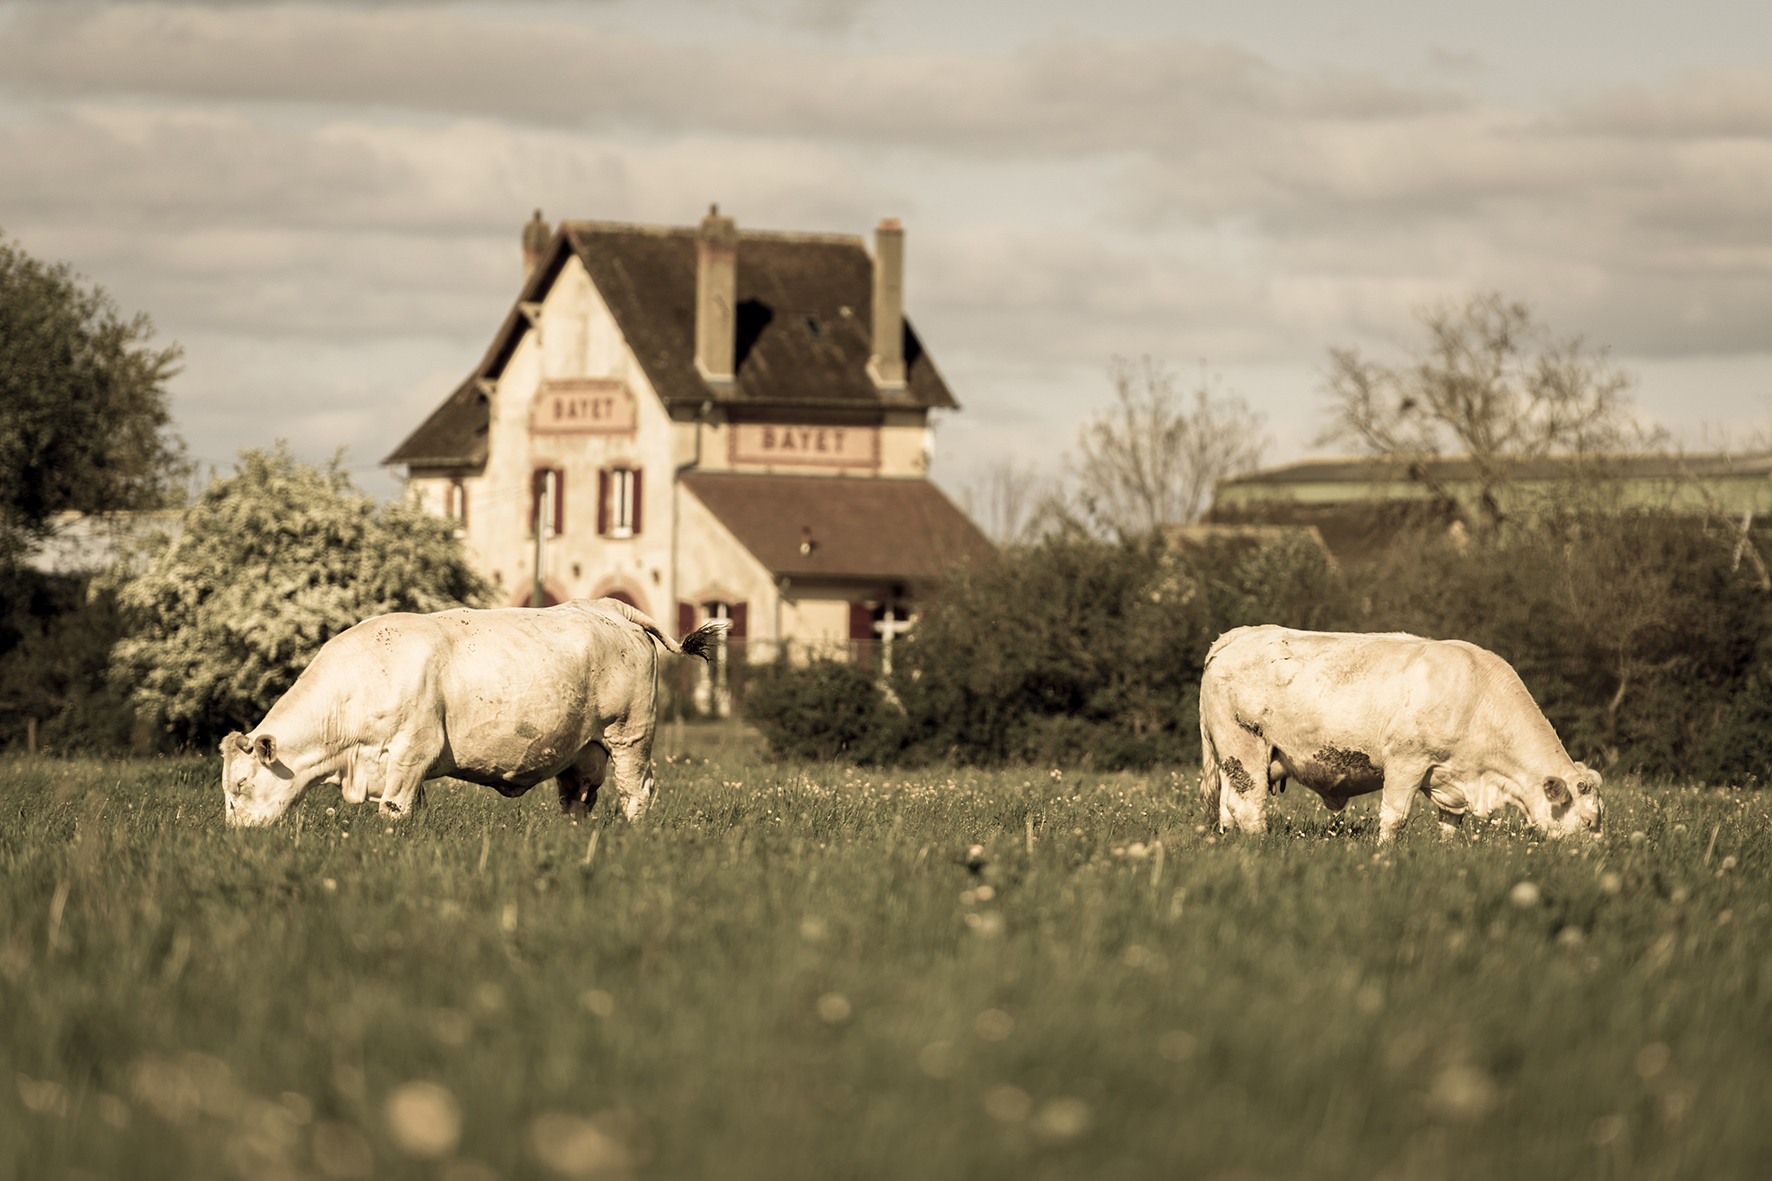 Photographe : Taking the country roads n°23